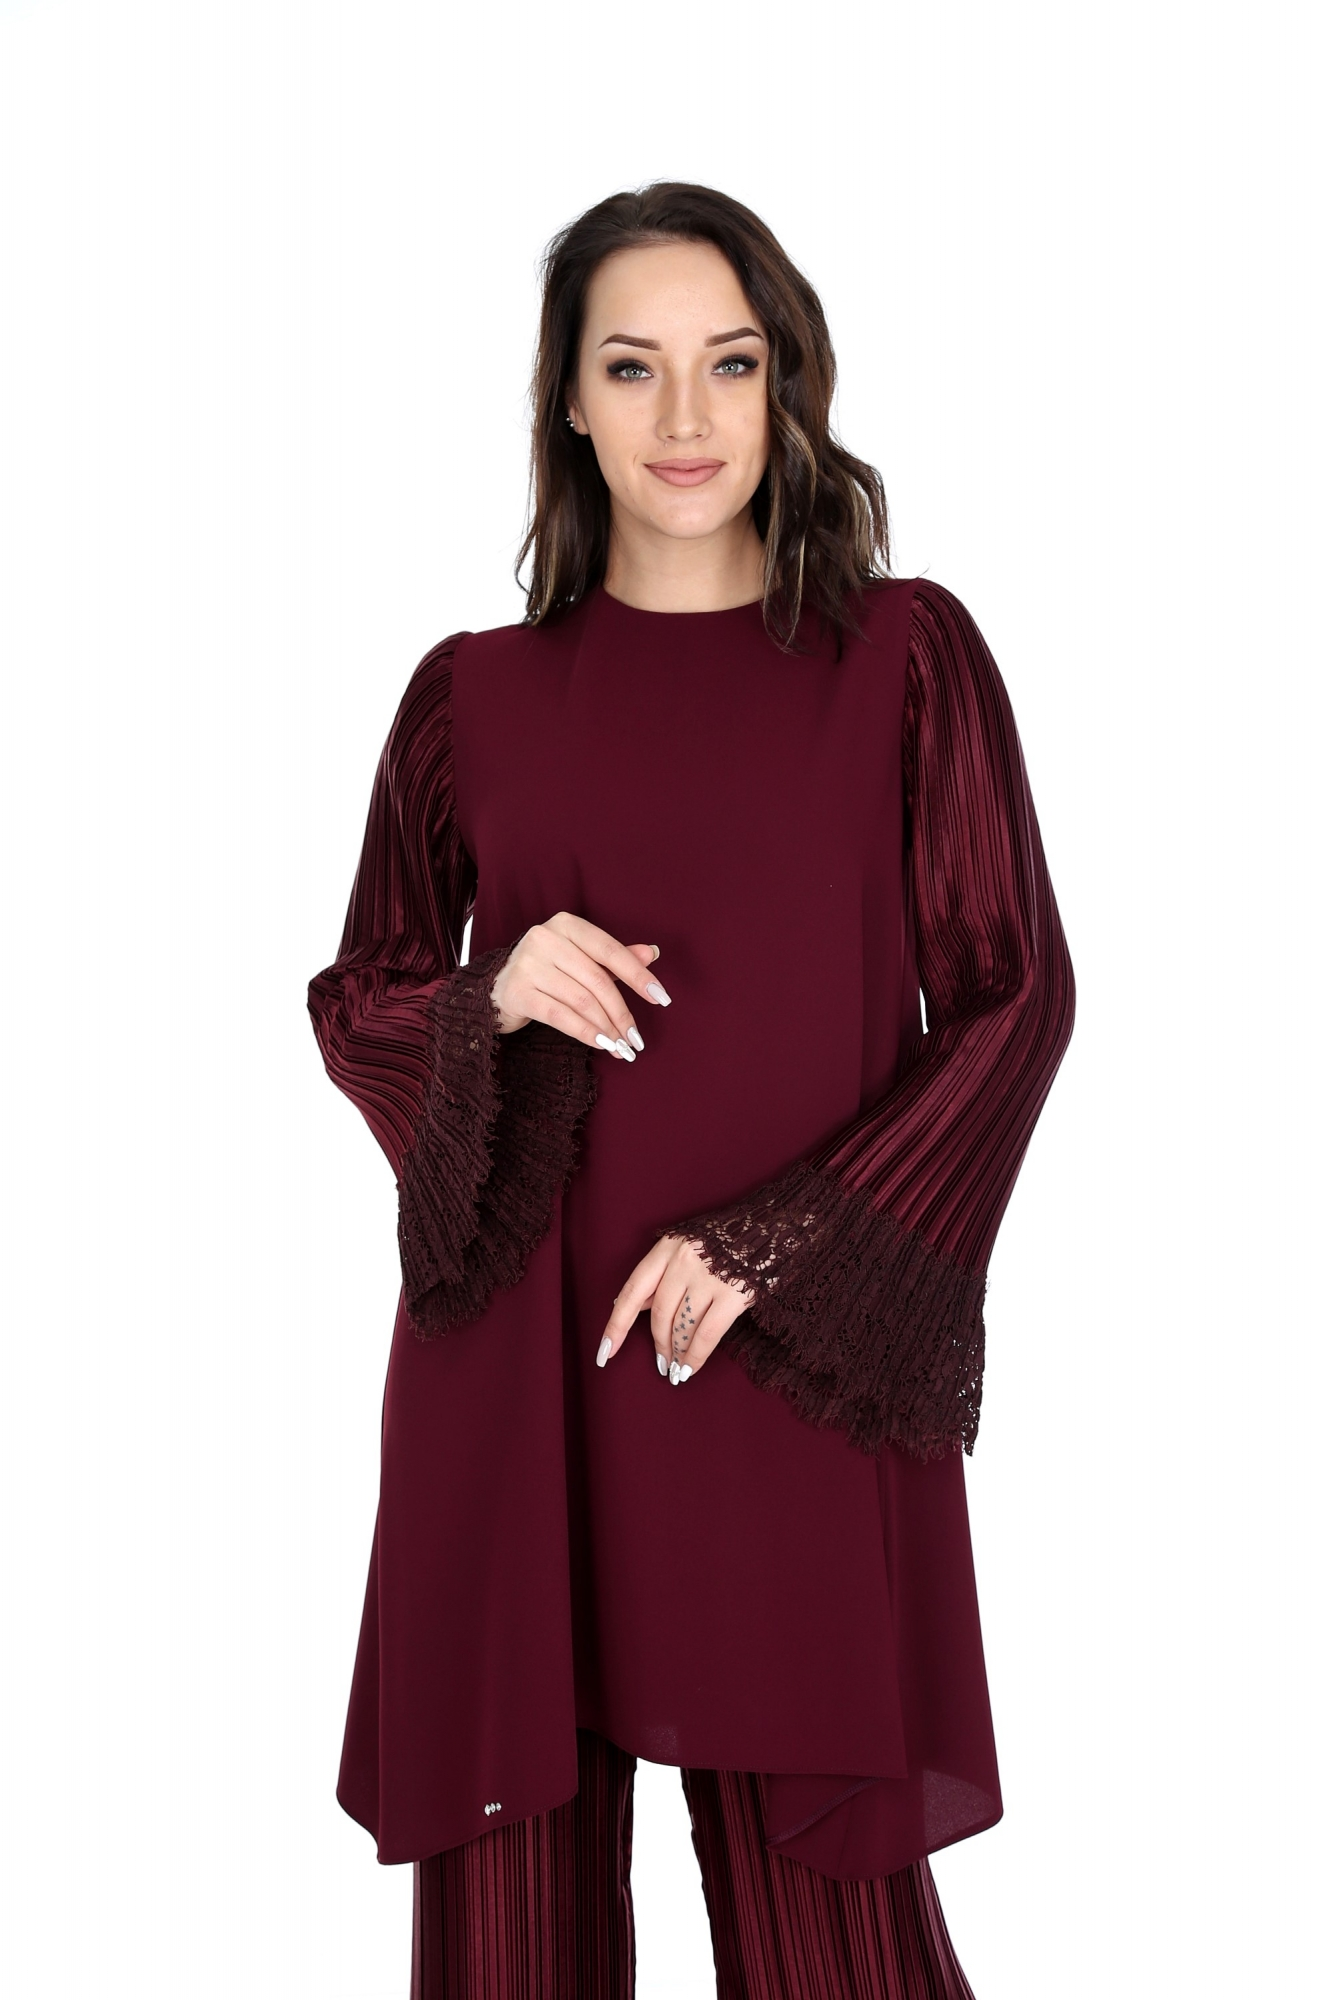 Leyuze Tunik Bordo 2016W19